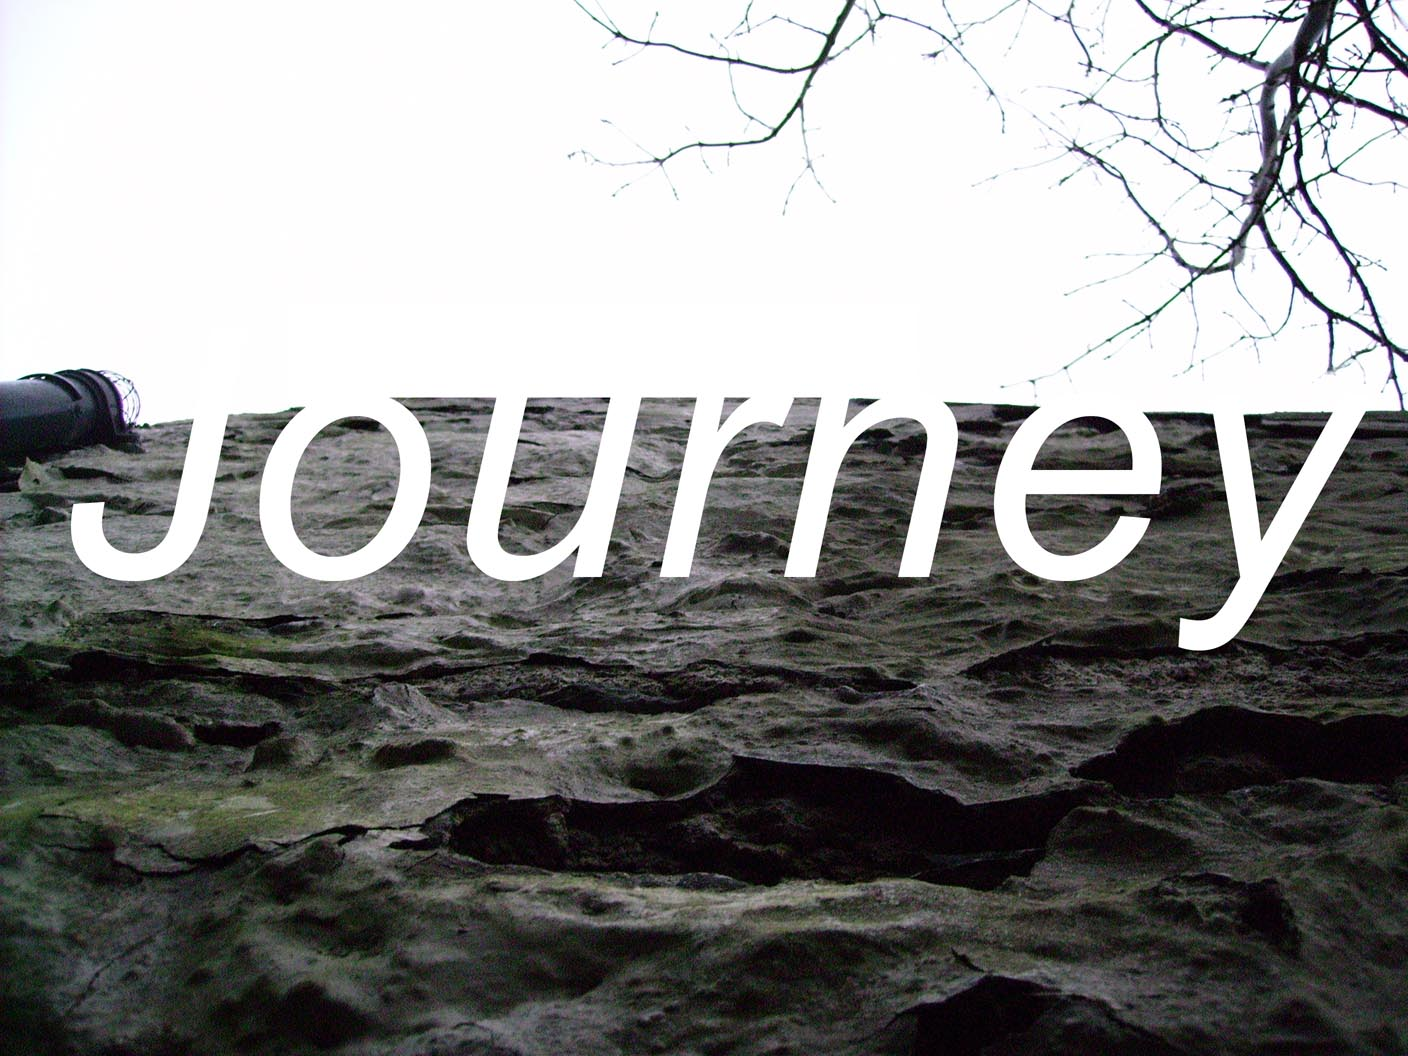 Journey is the first film Wren made back in 2008. he uses parkour and free running in the film to explore derelict buildings in North Wales.